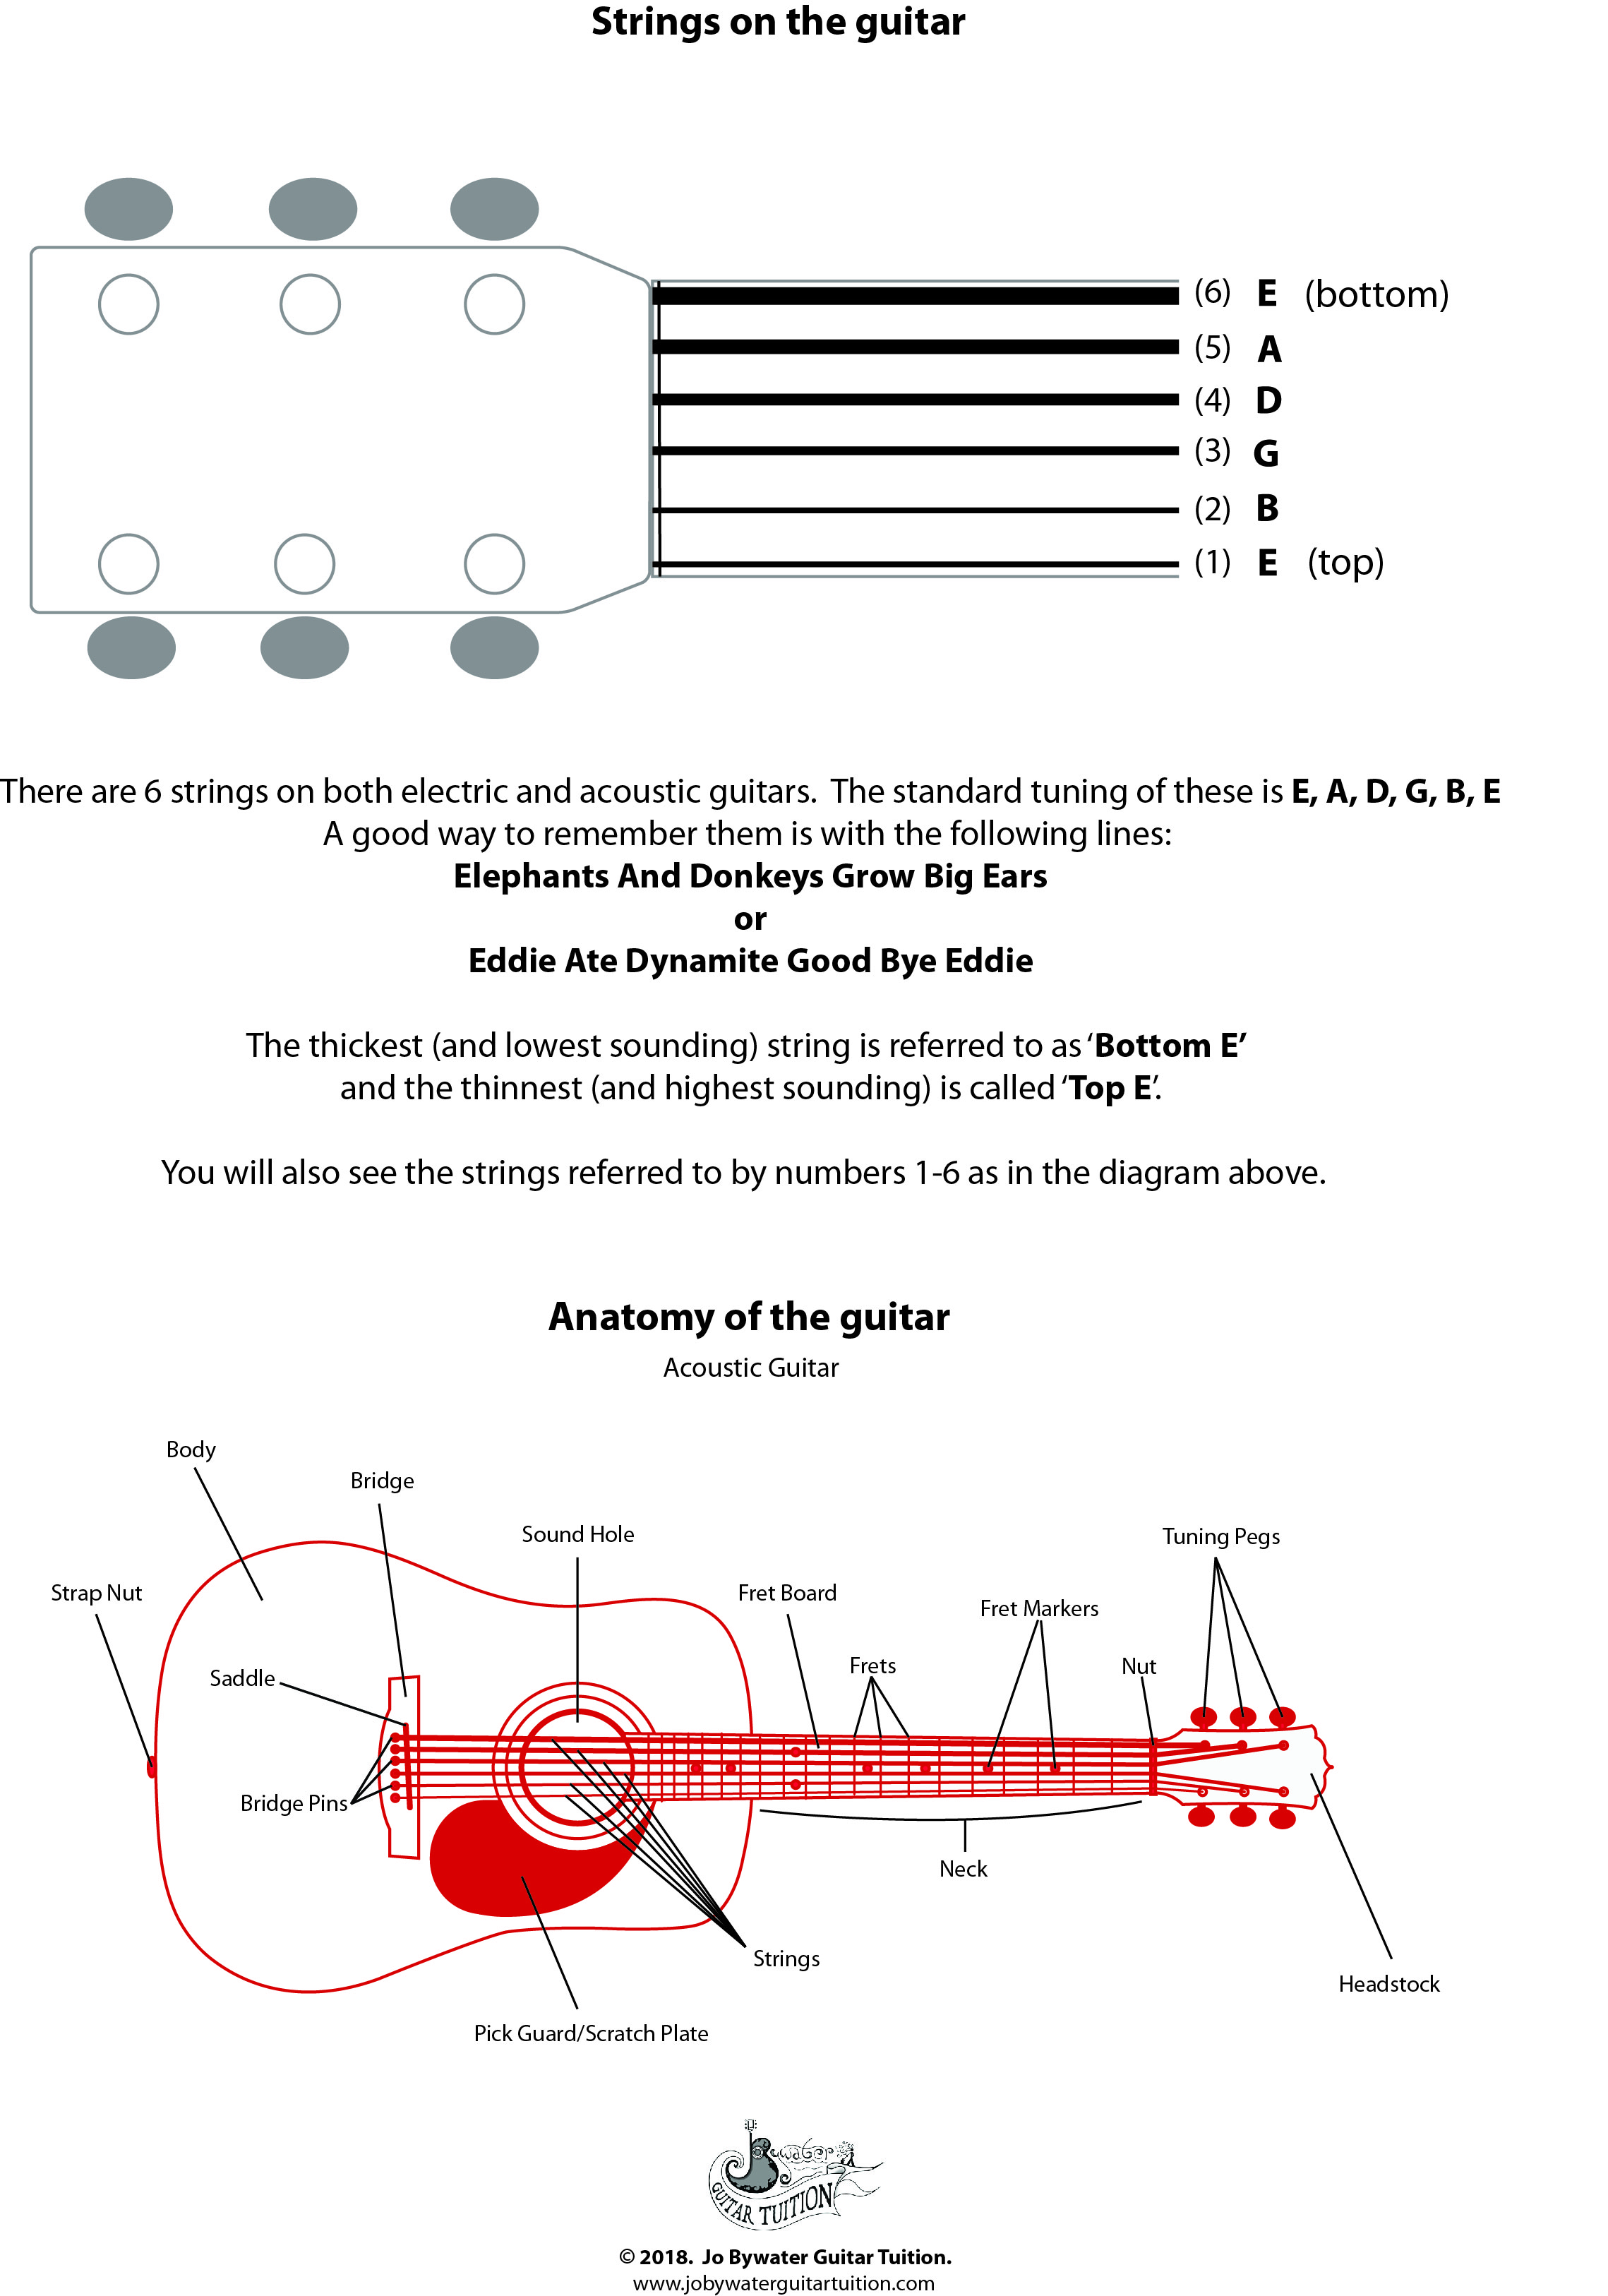 Guitar string names & acoustic guitar diagram